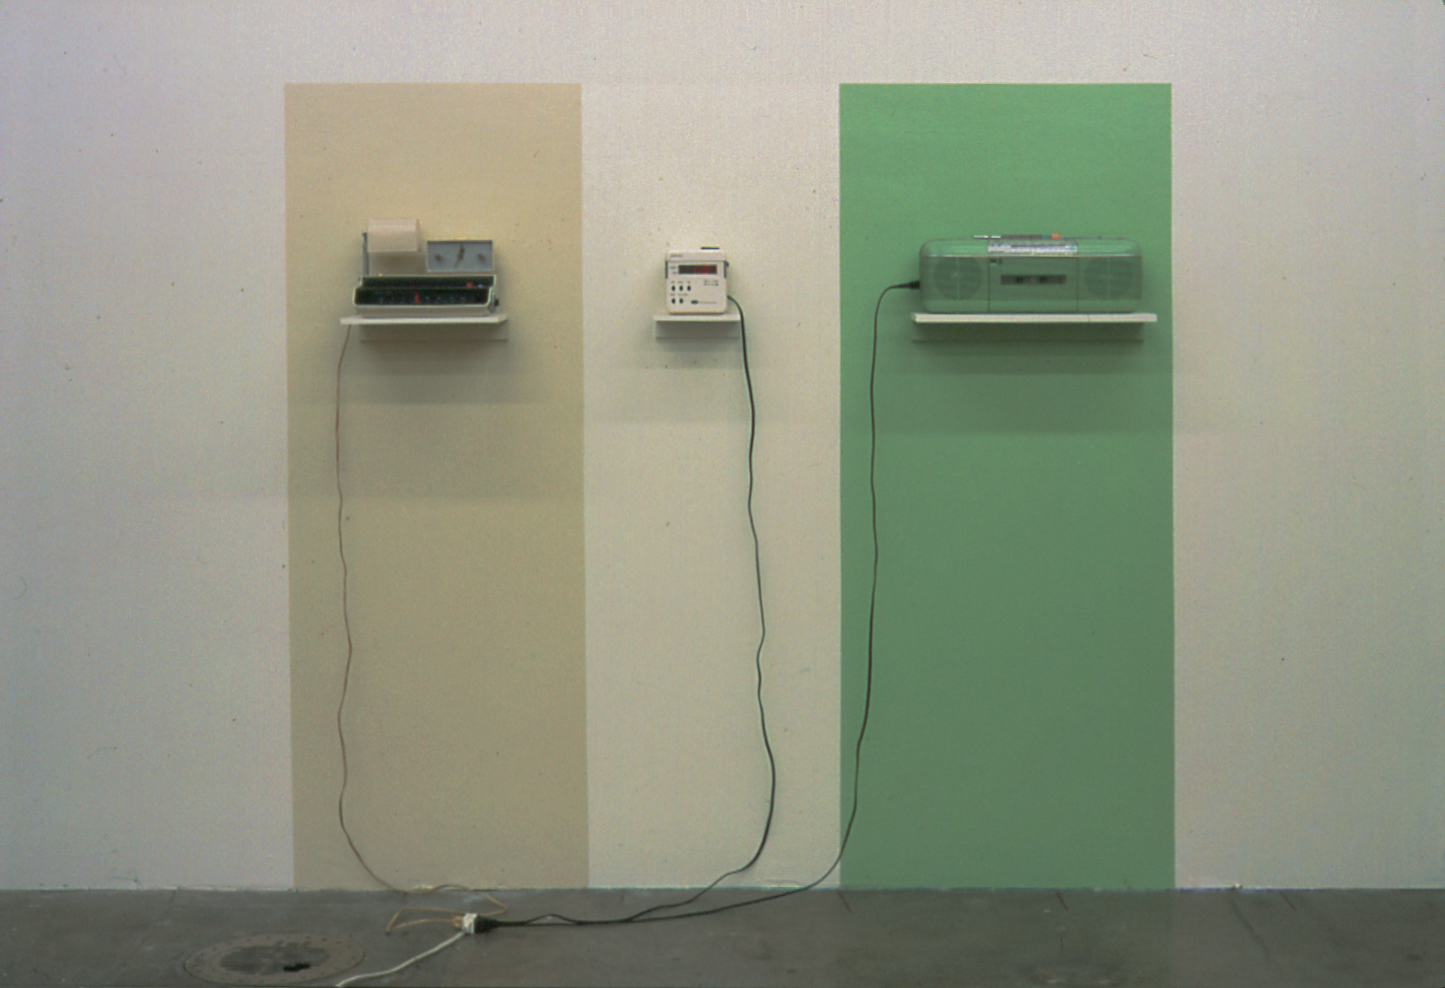 Tricolor, latex paint, 3 radios, shelves, 59 x 64 x 8 inches, 1998.